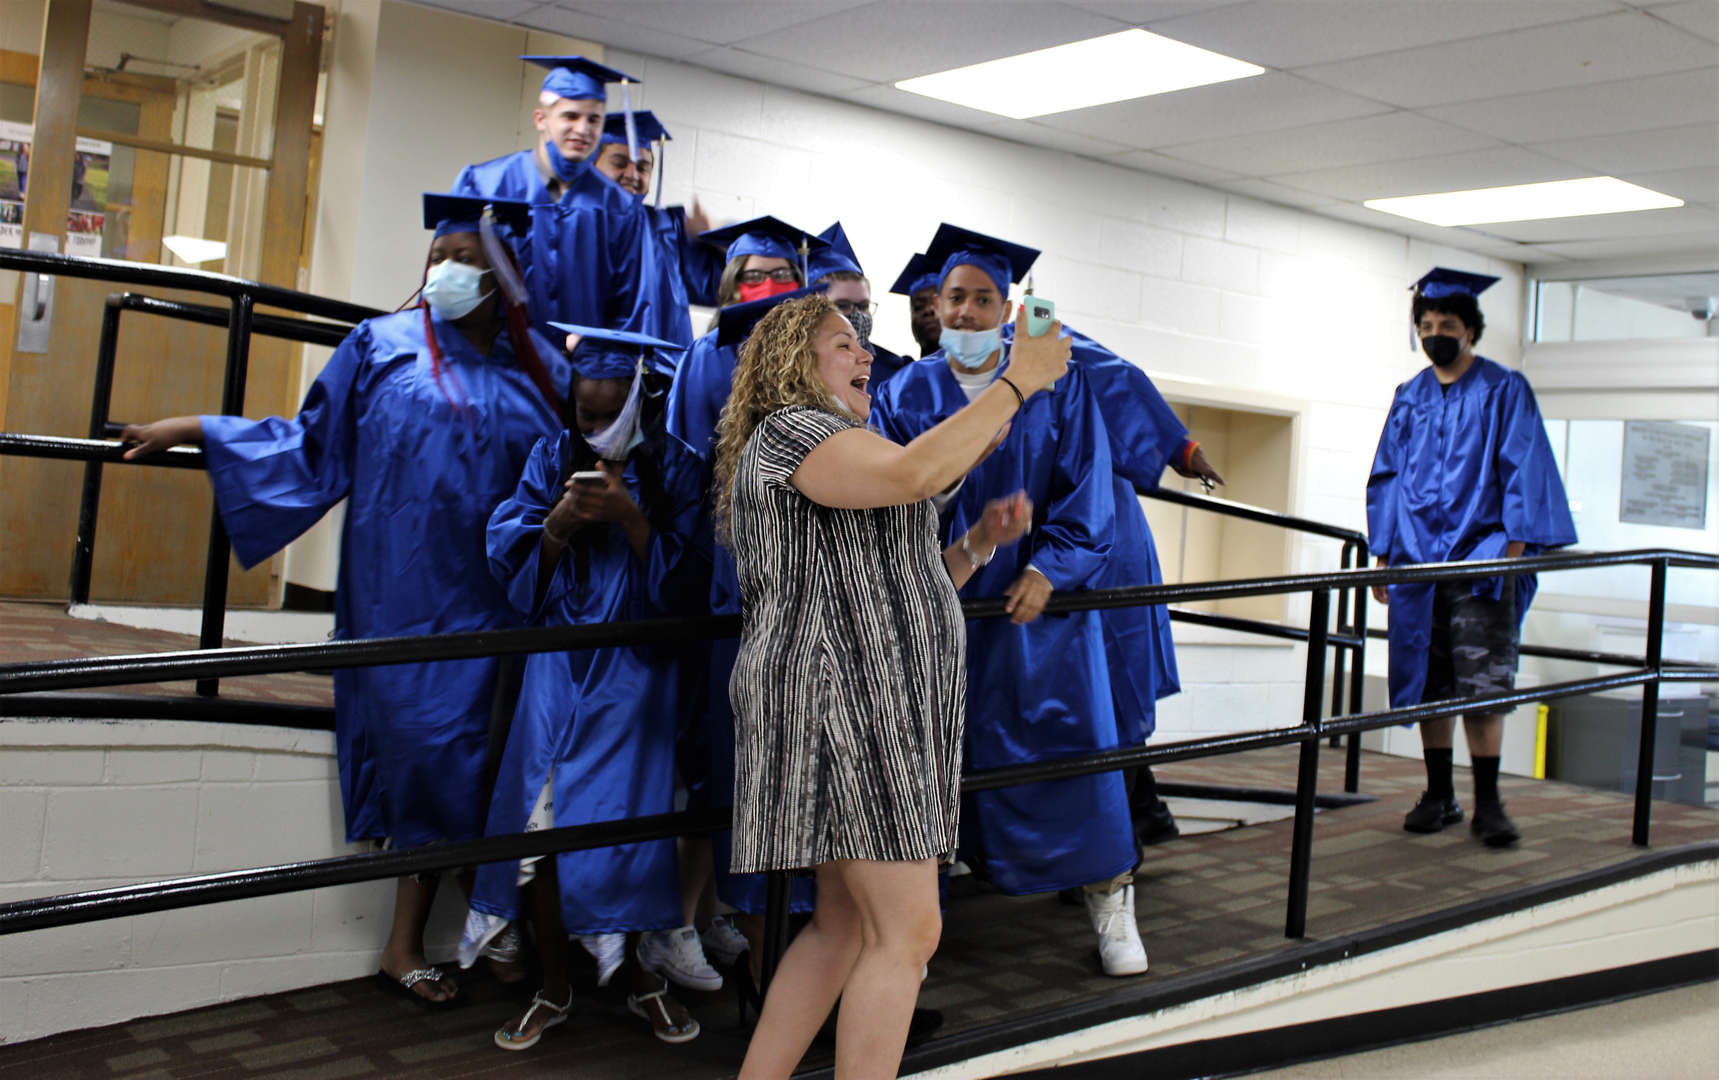 School counselor Cristina Tompkins takes a selfie with graduates.